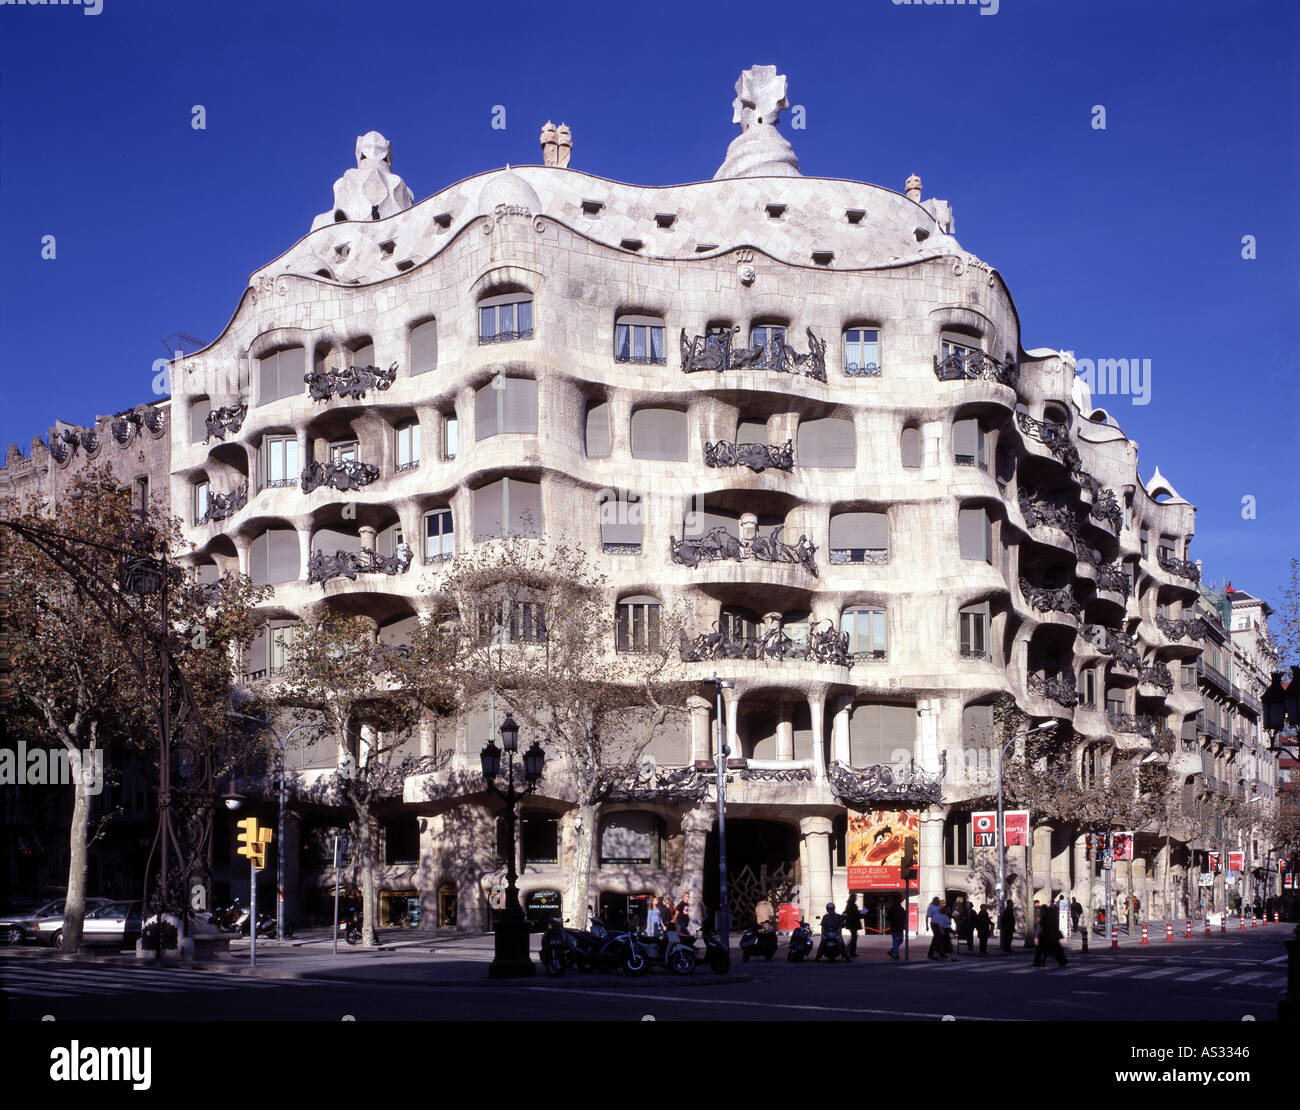 Barcelona casa mila la pedrera fassade architekt antonio gaudi stock photo 1585989 alamy - Architekt barcelona ...